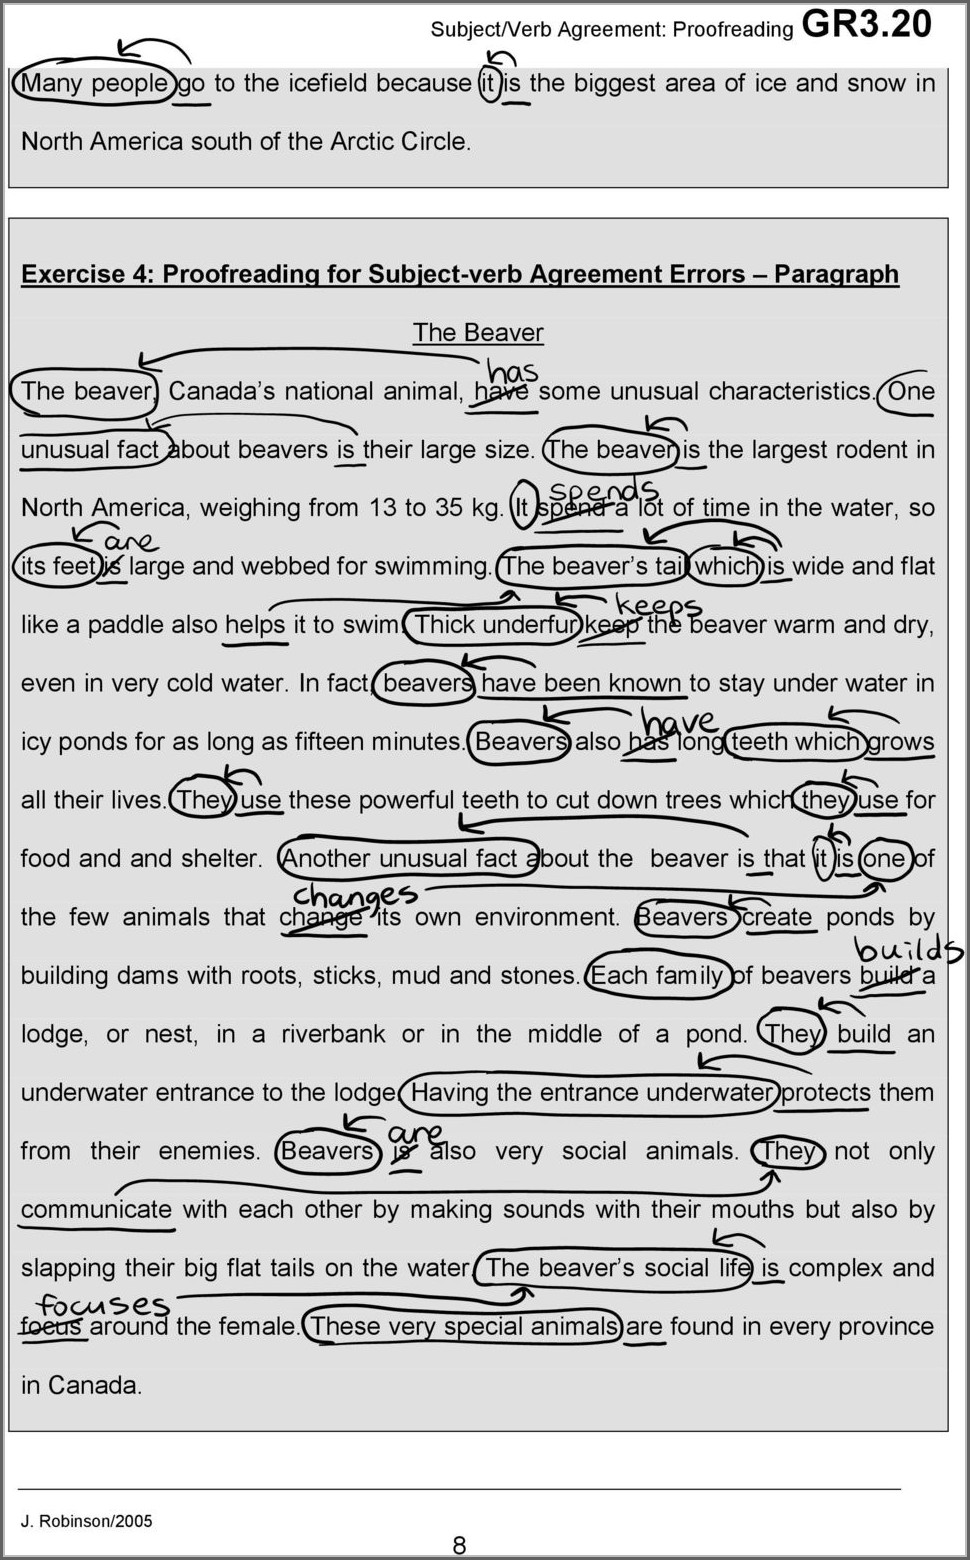 Subject Verb Agreement Exercises Paragraph Form